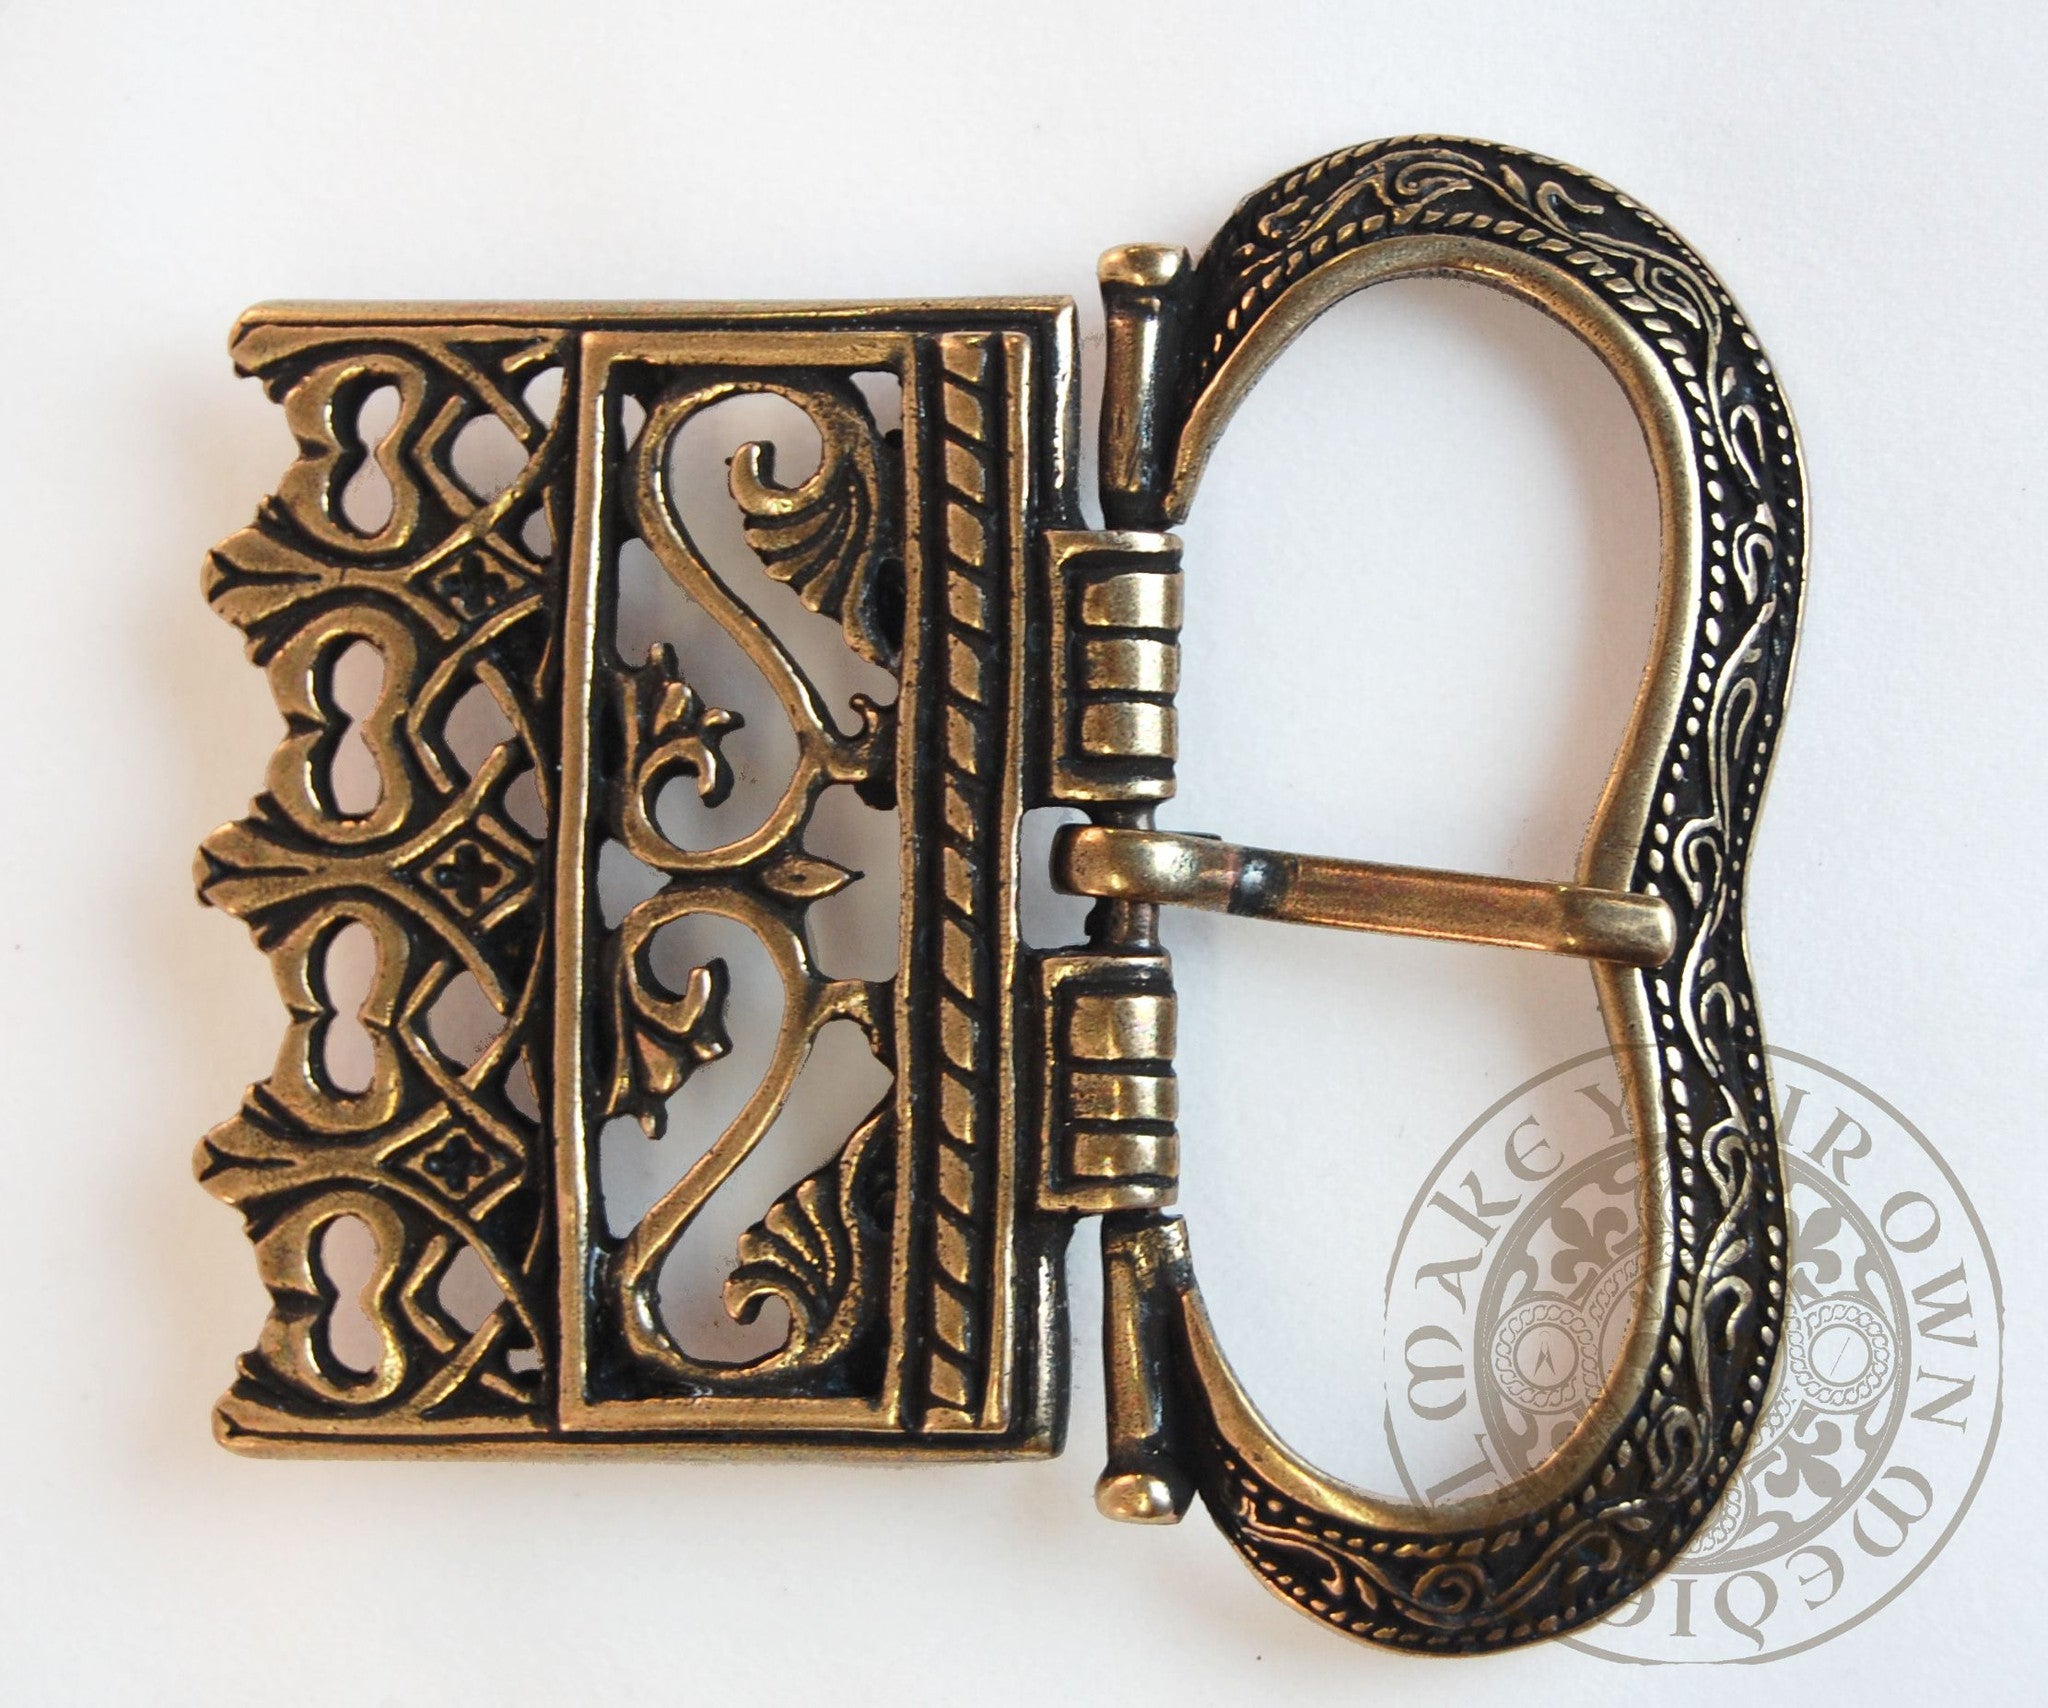 Renaissance wide belt buckle clothing and costume SCA garb